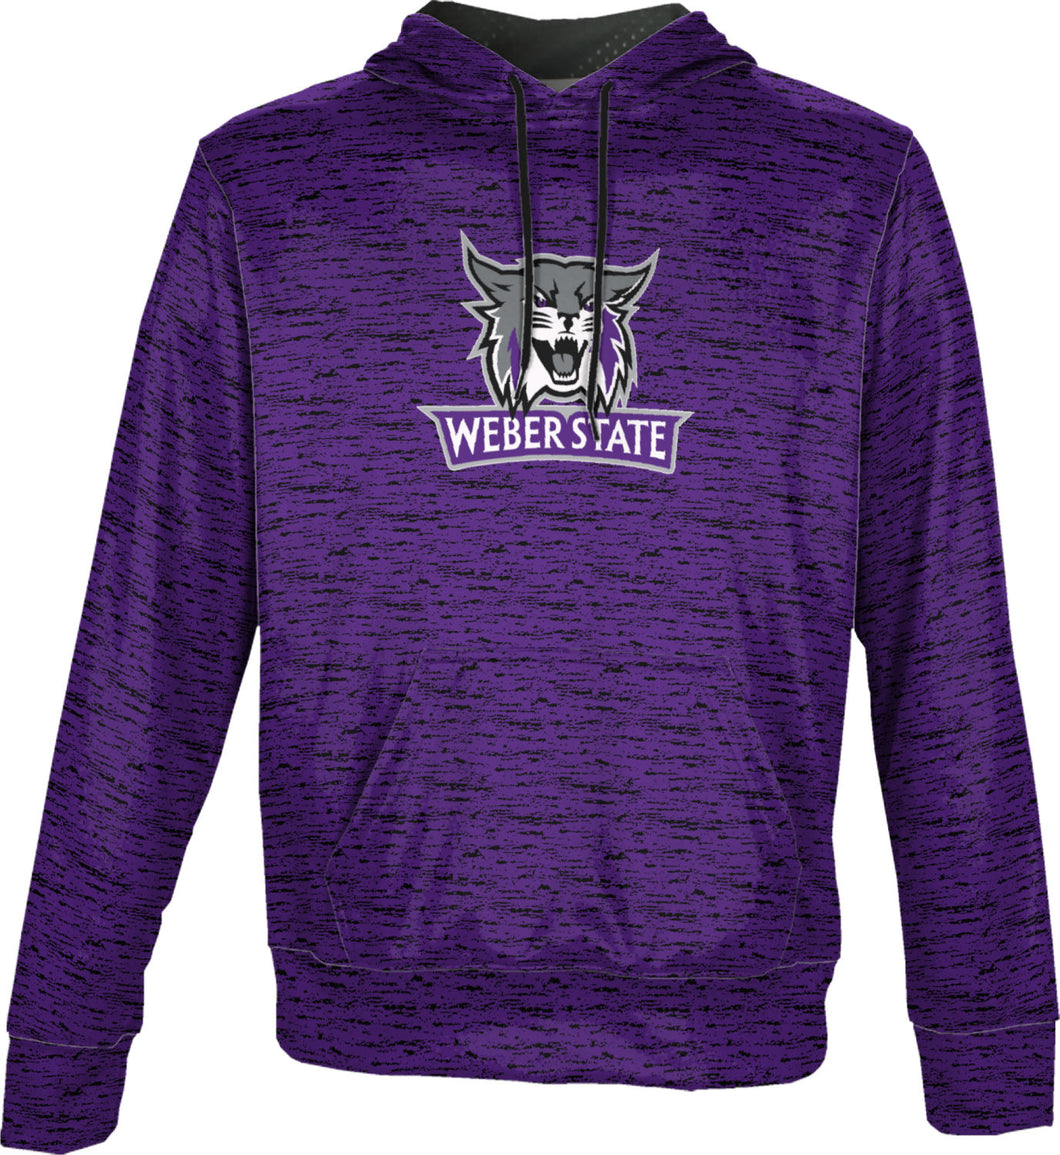 Weber State University: Boys' Pullover Hoodie - Brushed